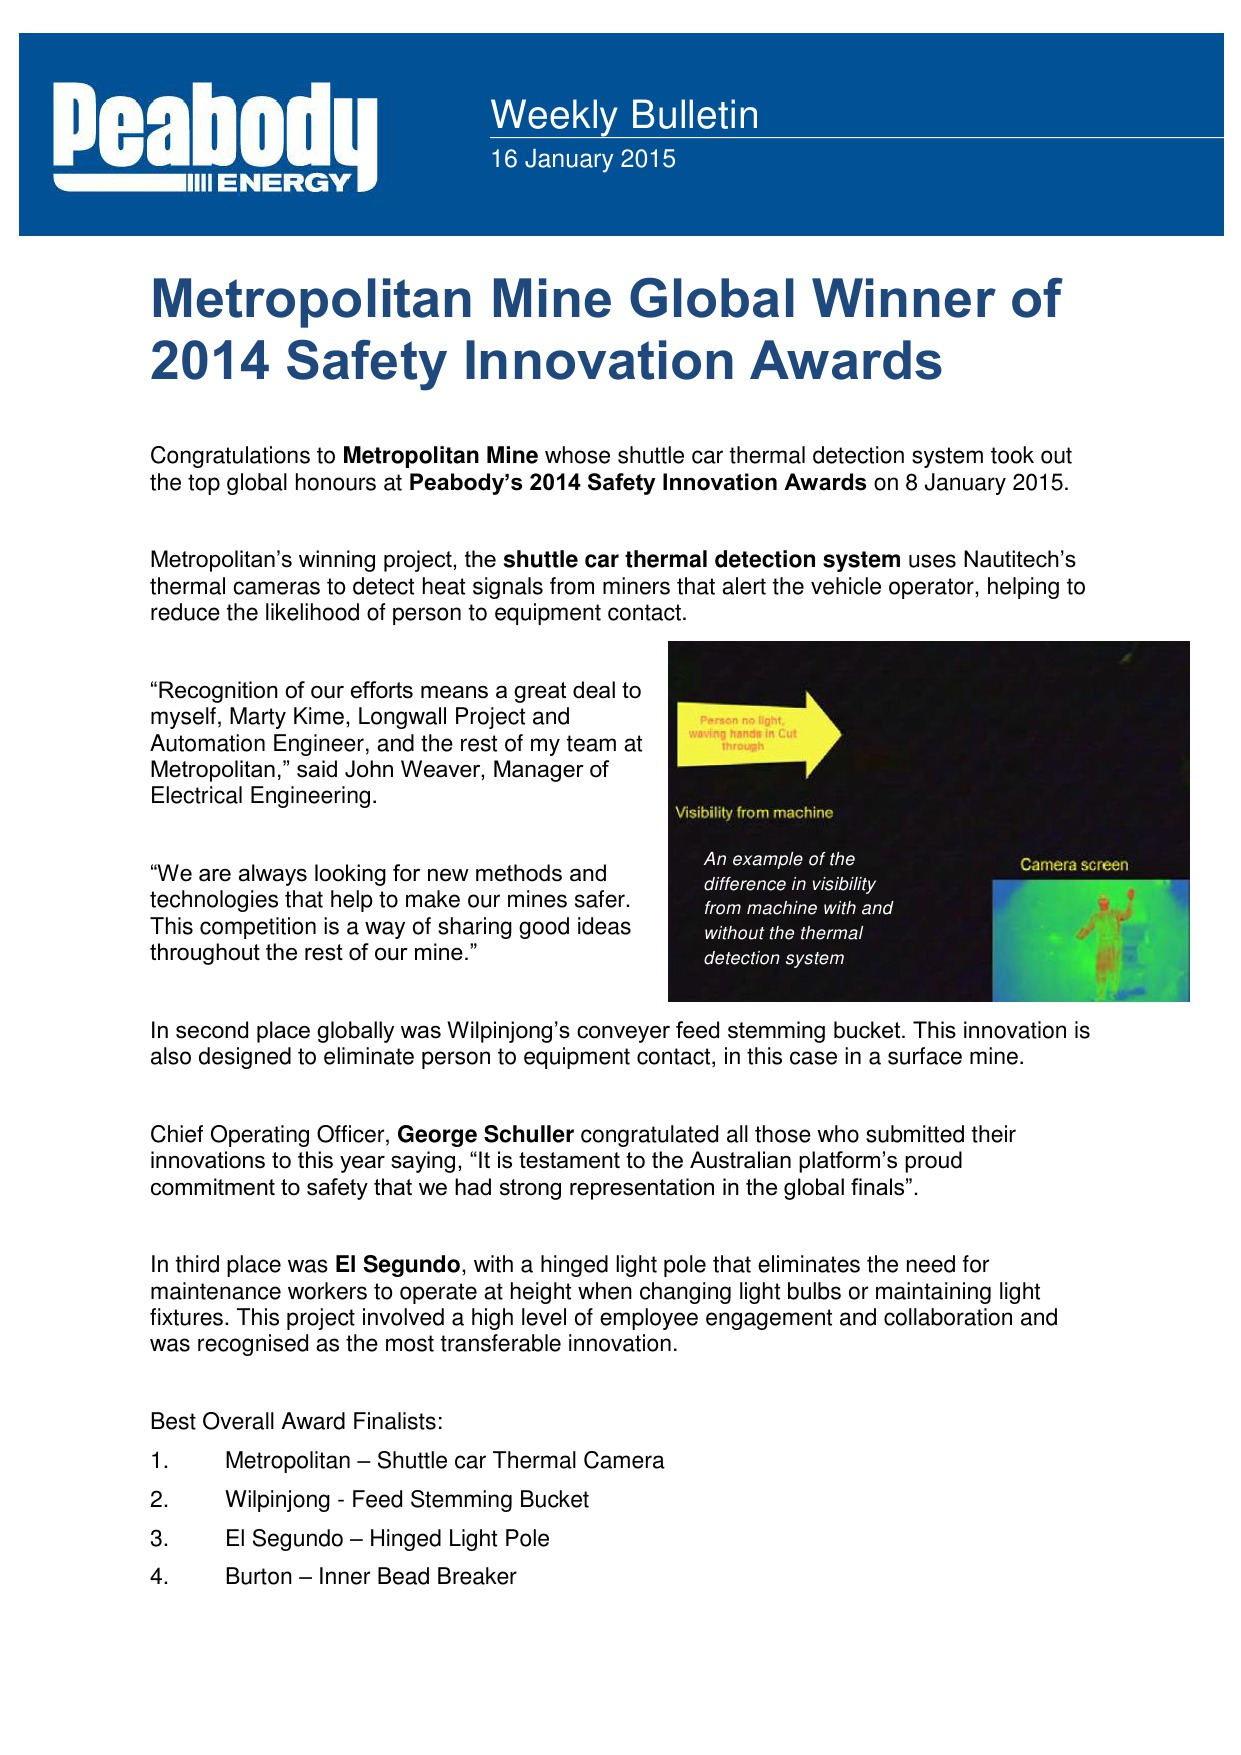 Metropolitan Mine Global Winner of 2014 Safety Innovation Awards